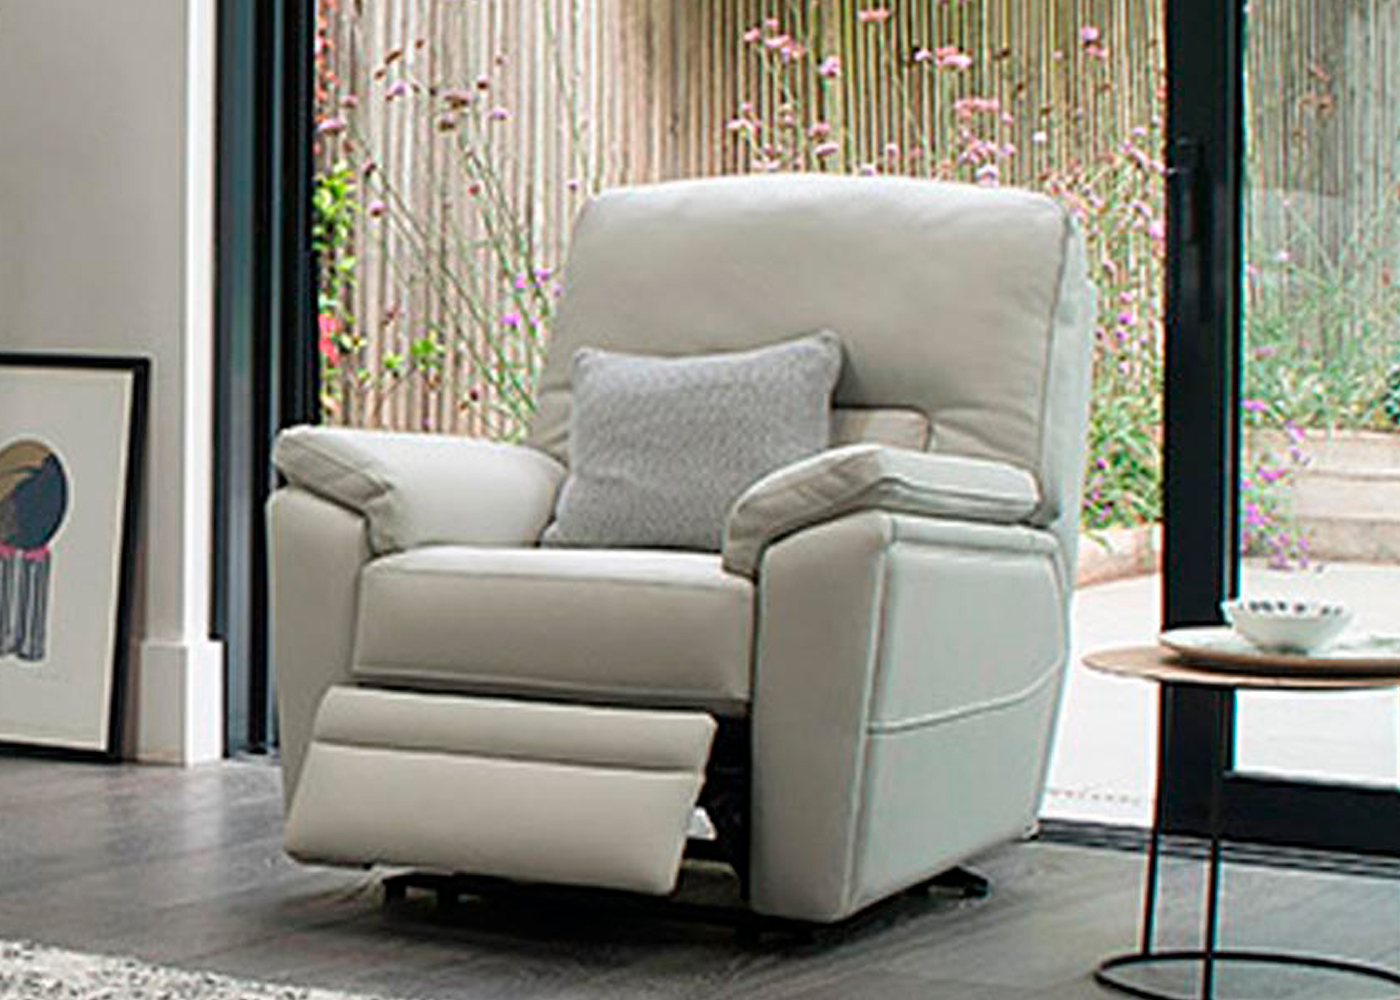 small lift chairs recliners black chair covers for sale parker knoll hampton - midfurn furniture superstore